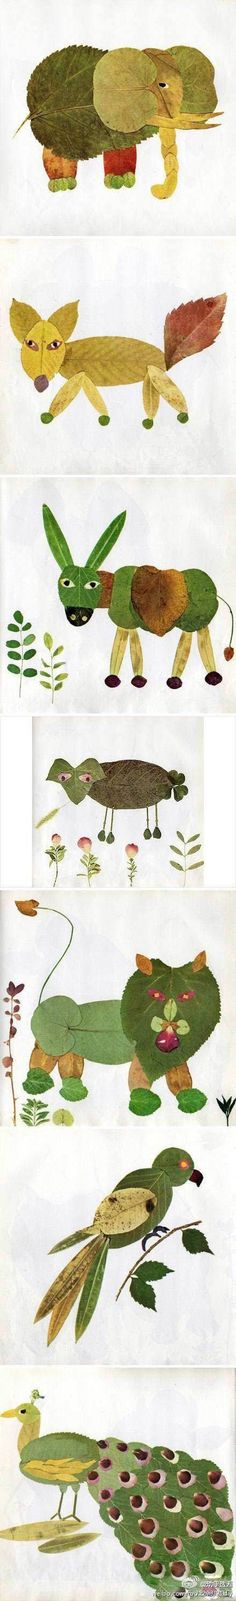 Leaf Animals!